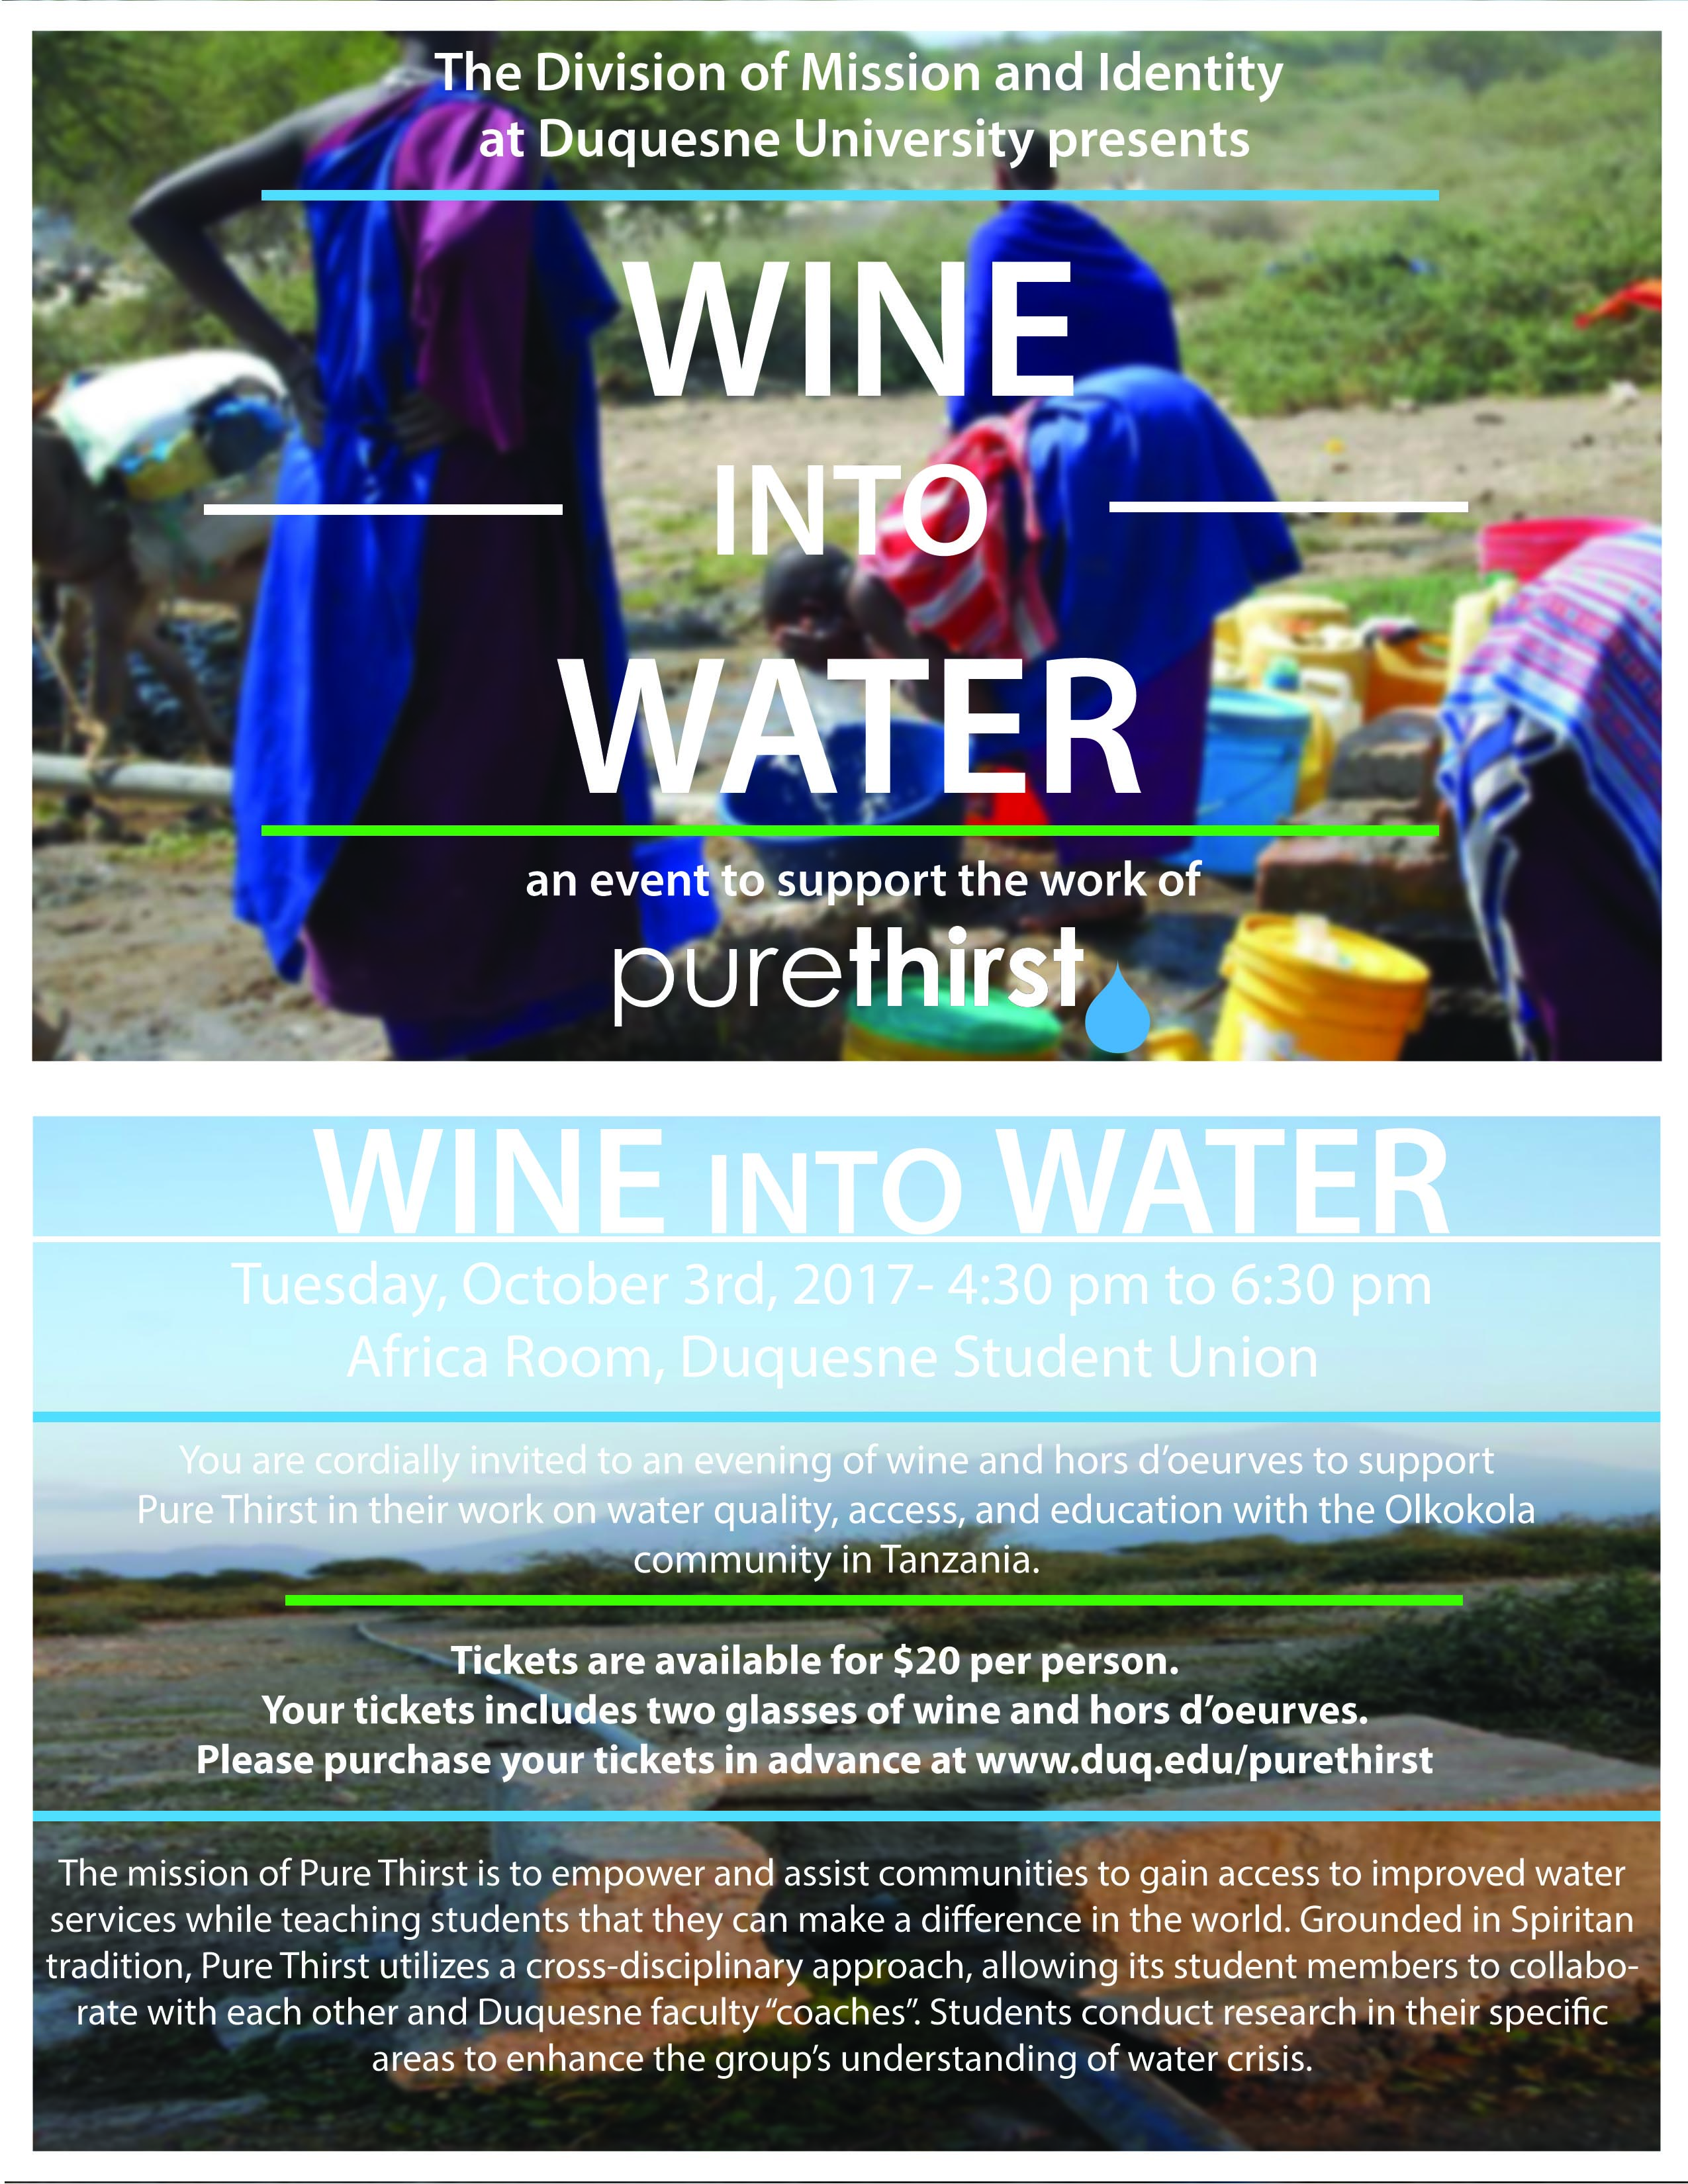 Wine into Water poster